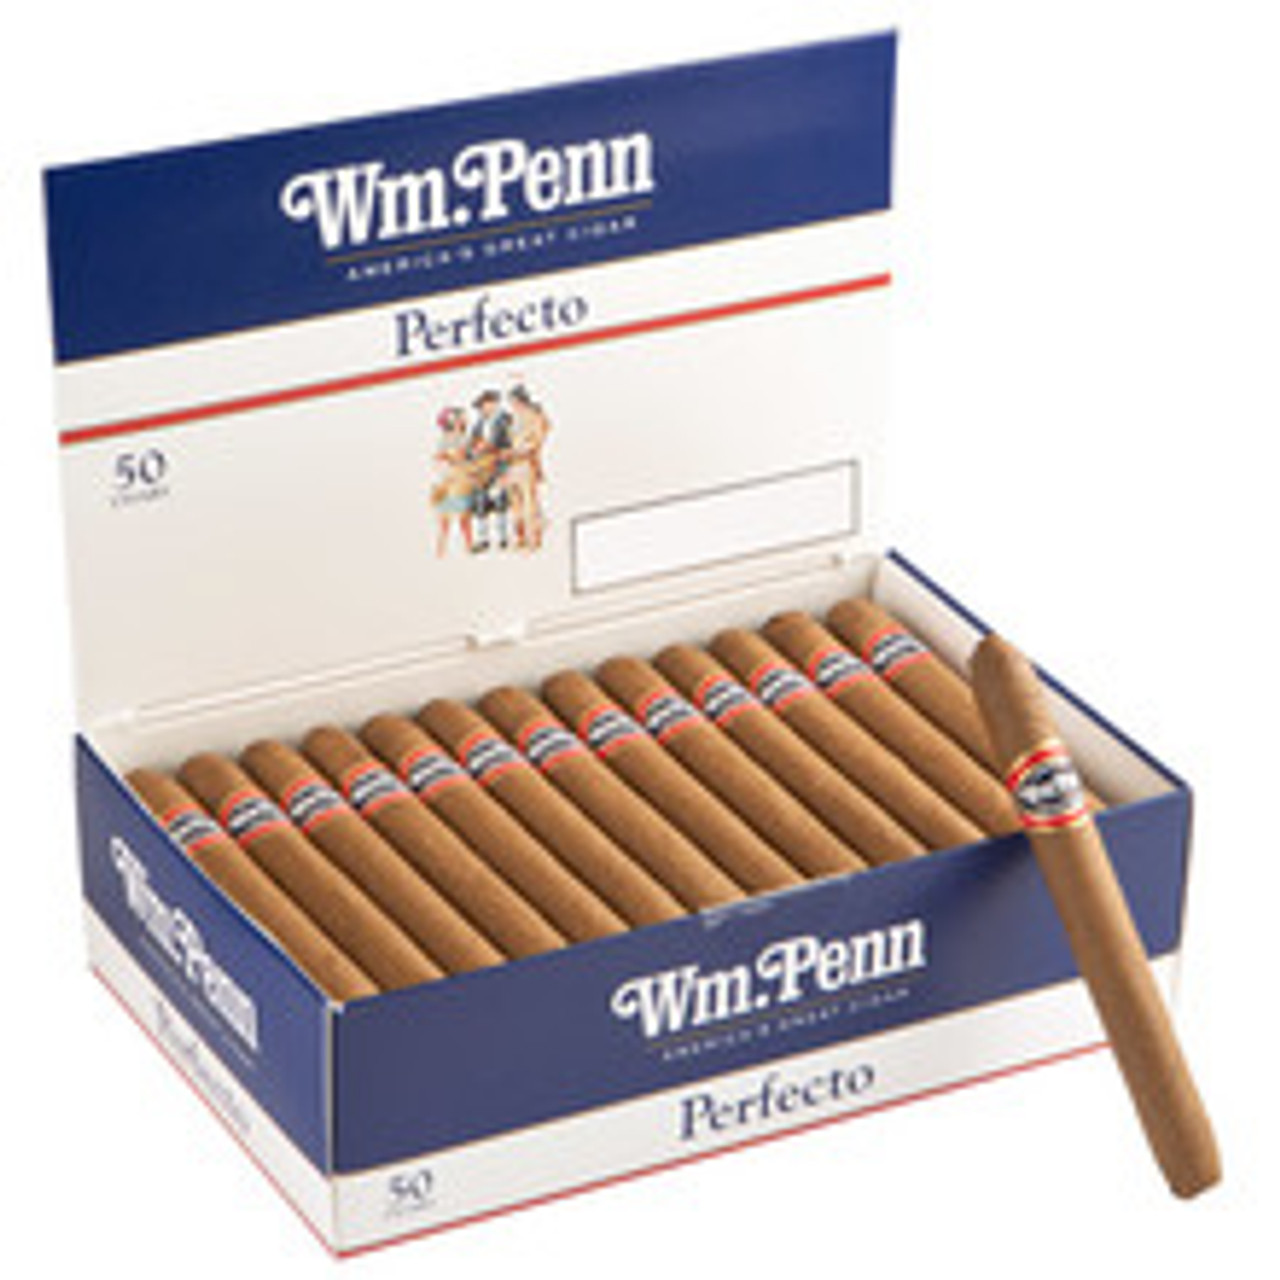 William Penn Perfecto Cigars (Box of 50) - Natural